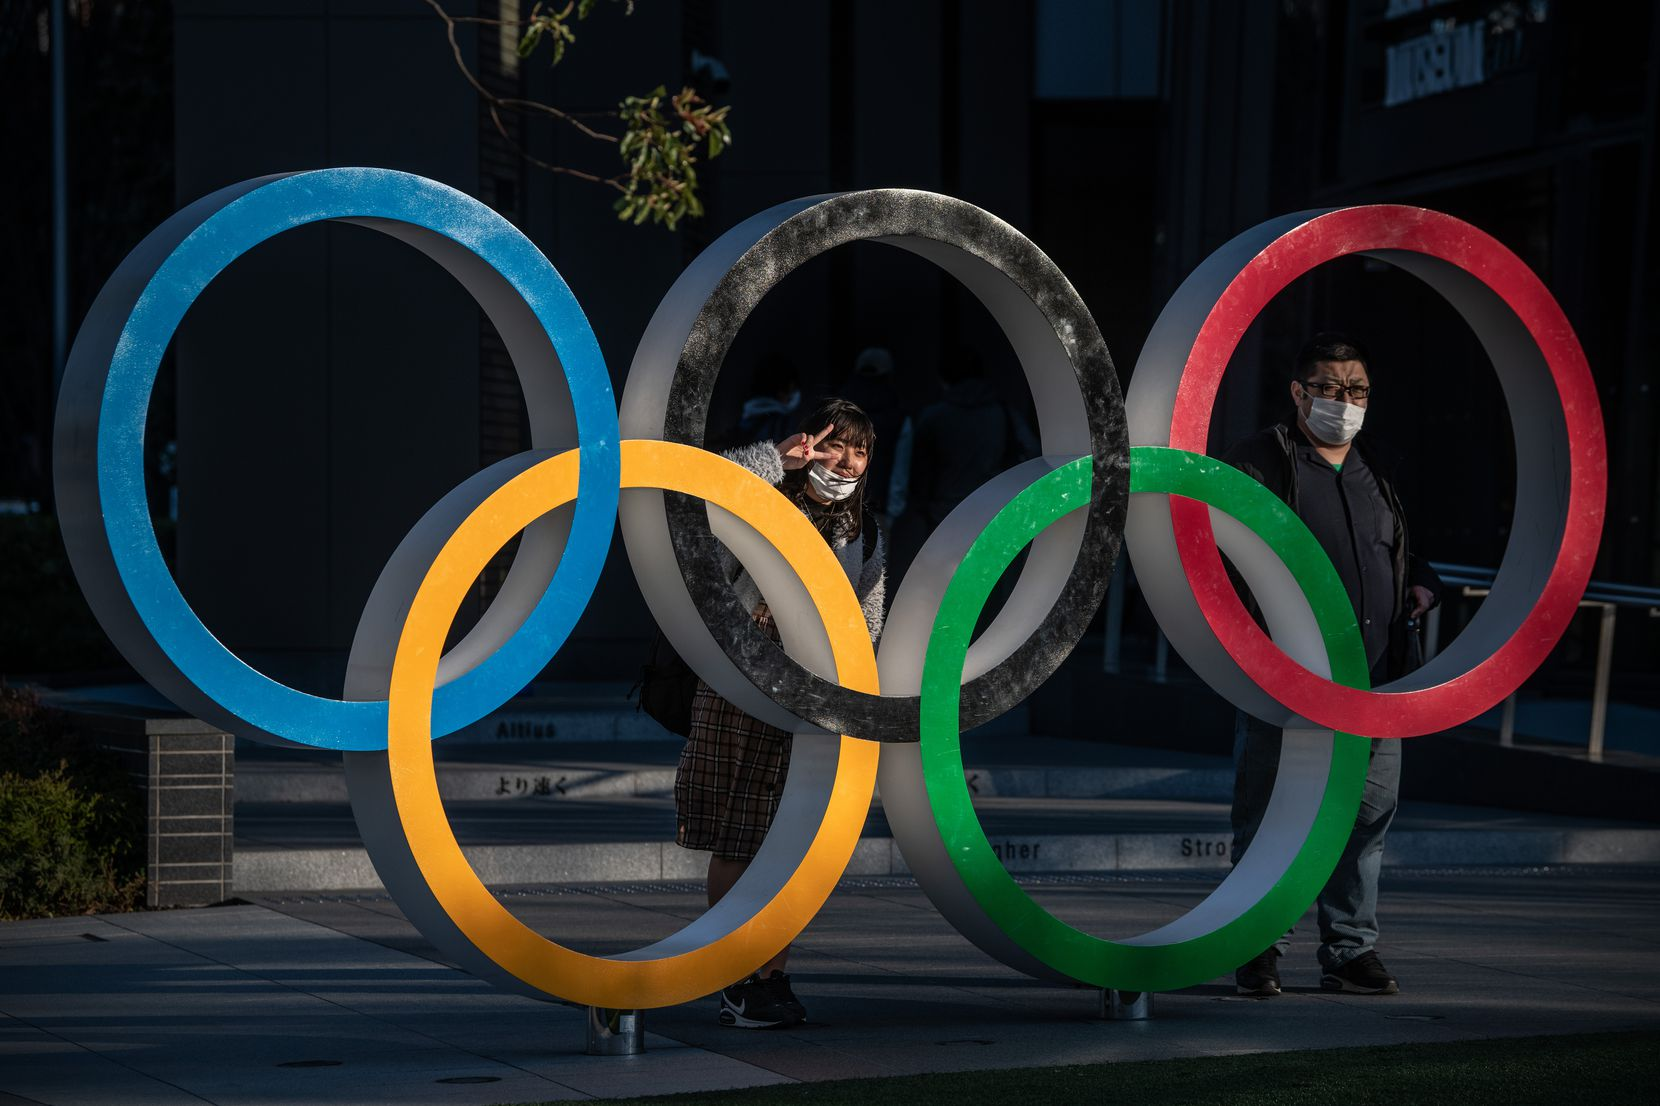 People wearing face masks pose for photographs next to Olympic Rings on March 24, 2020 in Tokyo, Japan.